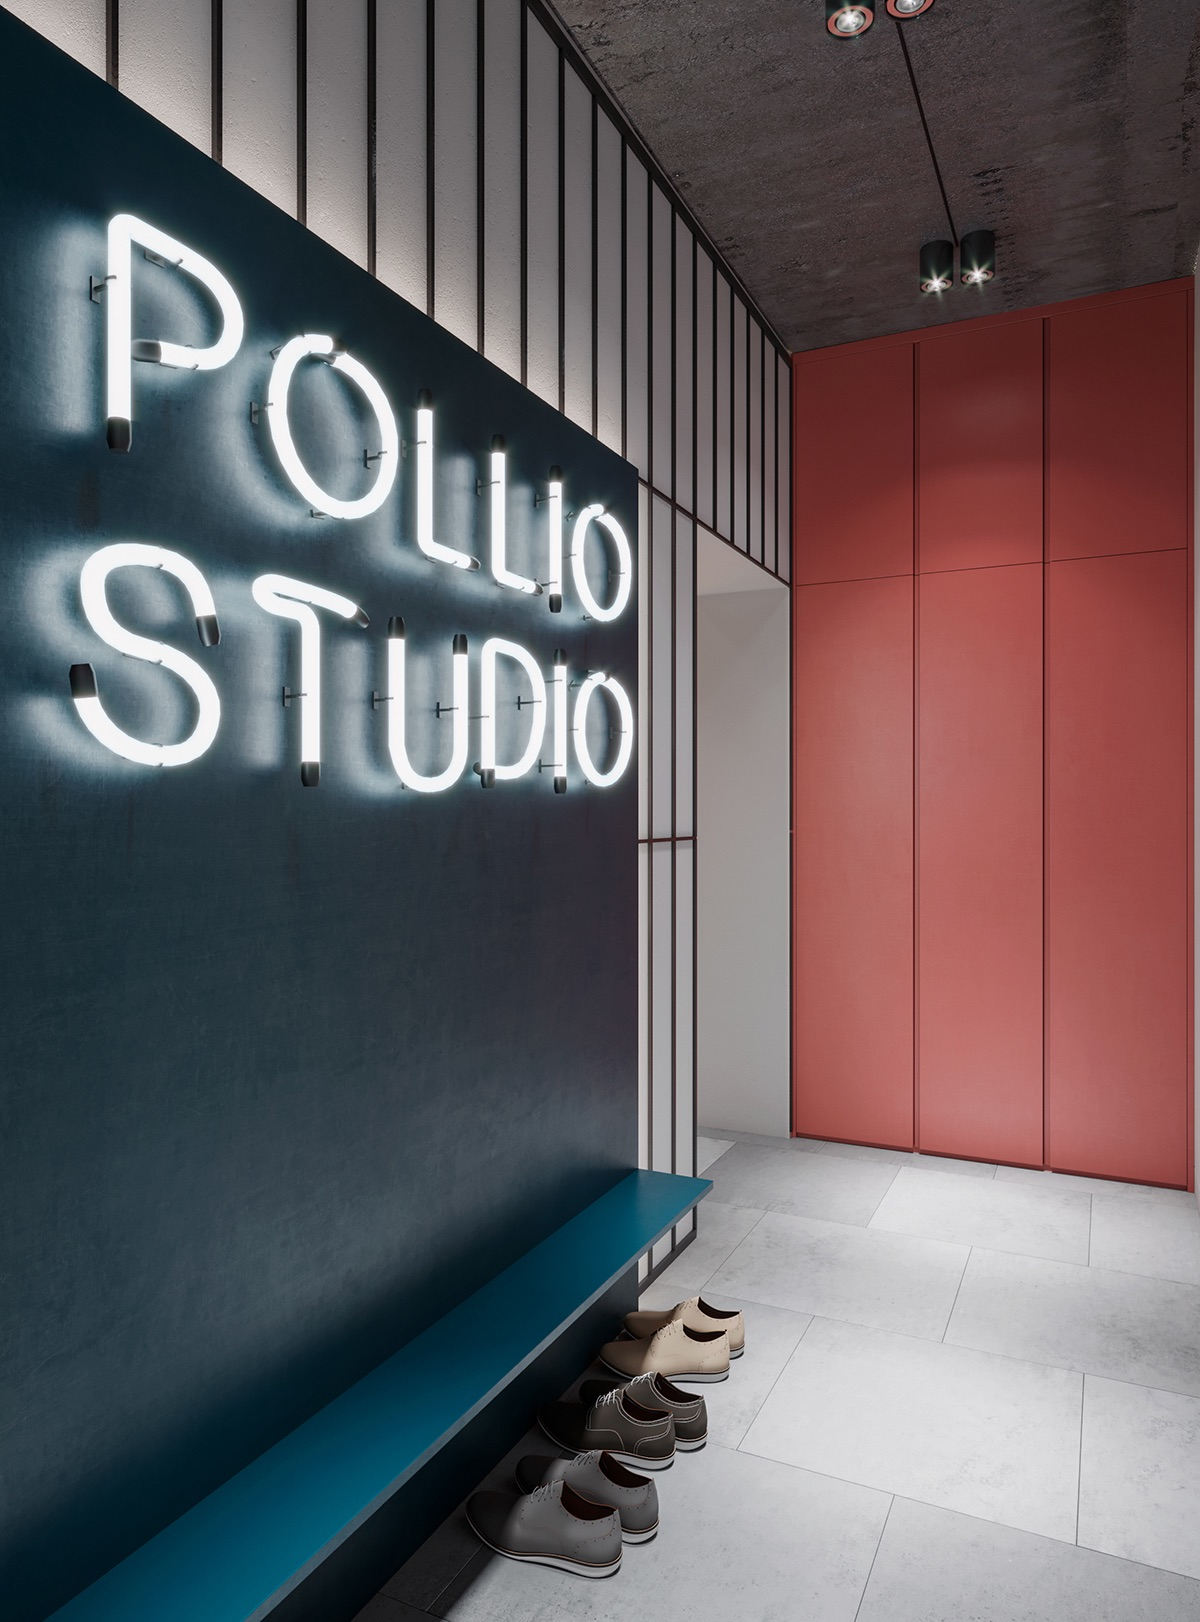 pollio-studio-office-1